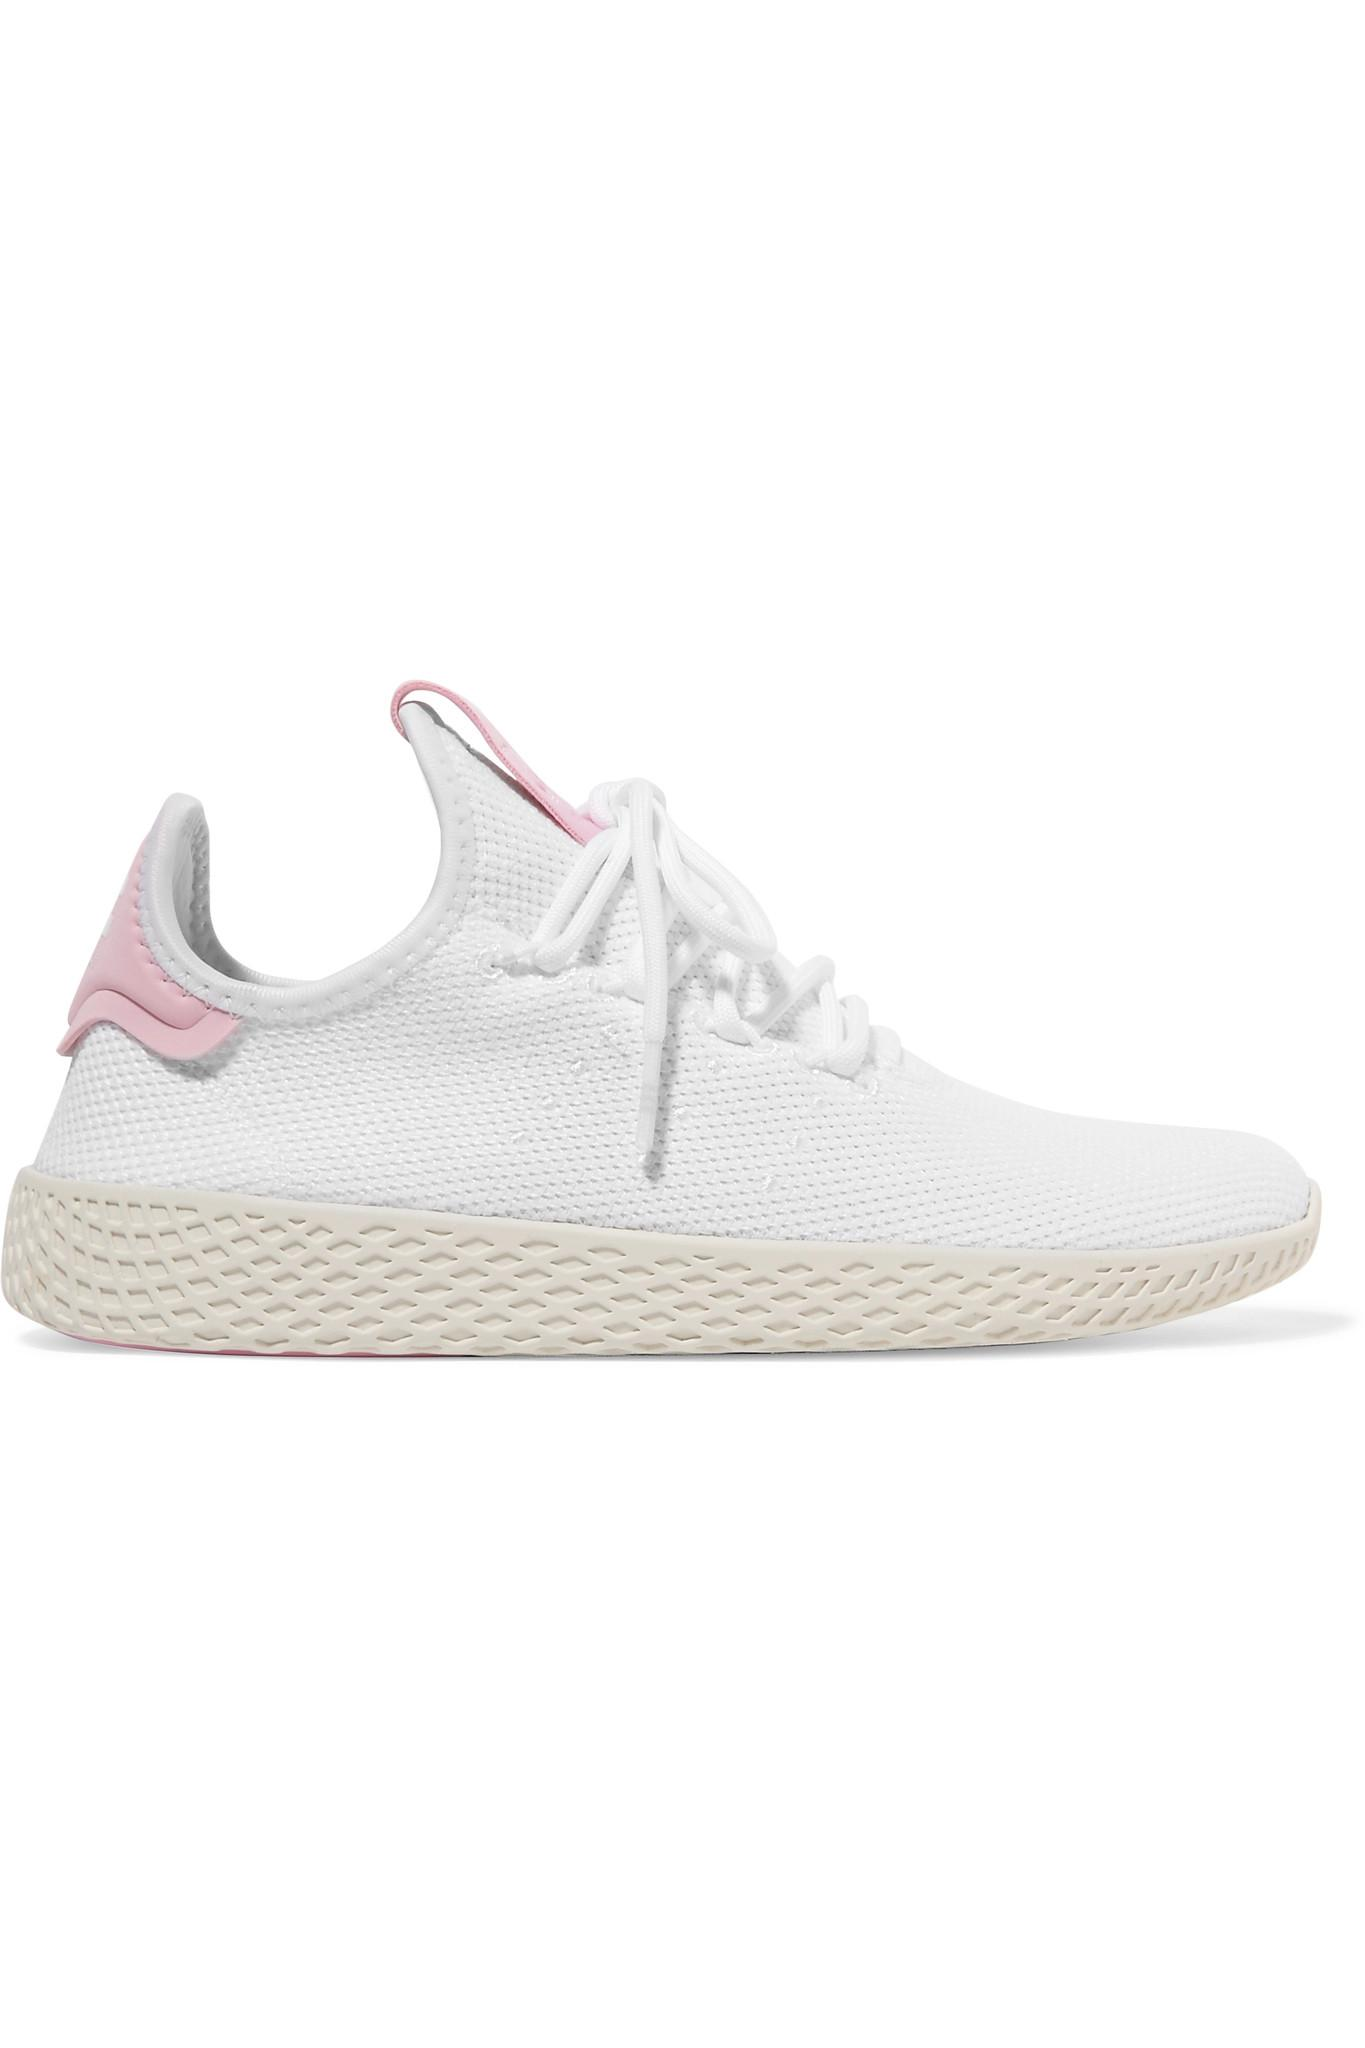 + Pharrell Williams Tennis Hu Stretch-knit Sneakers - White adidas Originals